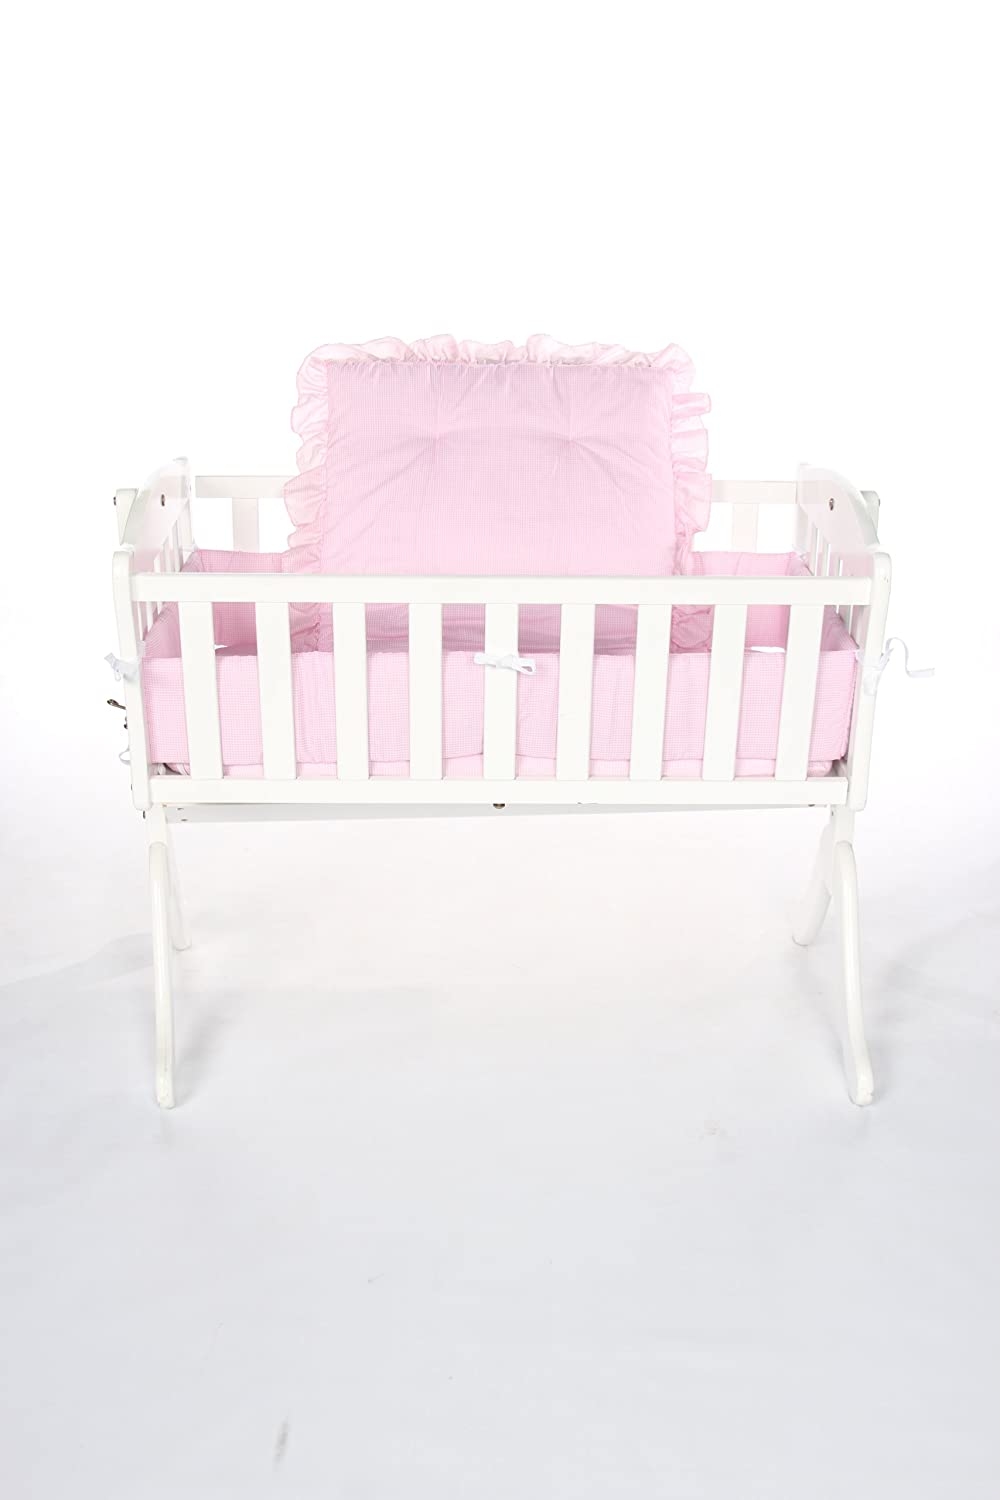 Baby Doll Bedding Gingham Cradle Set, Pink by BabyDoll Bedding   B00342UGR8